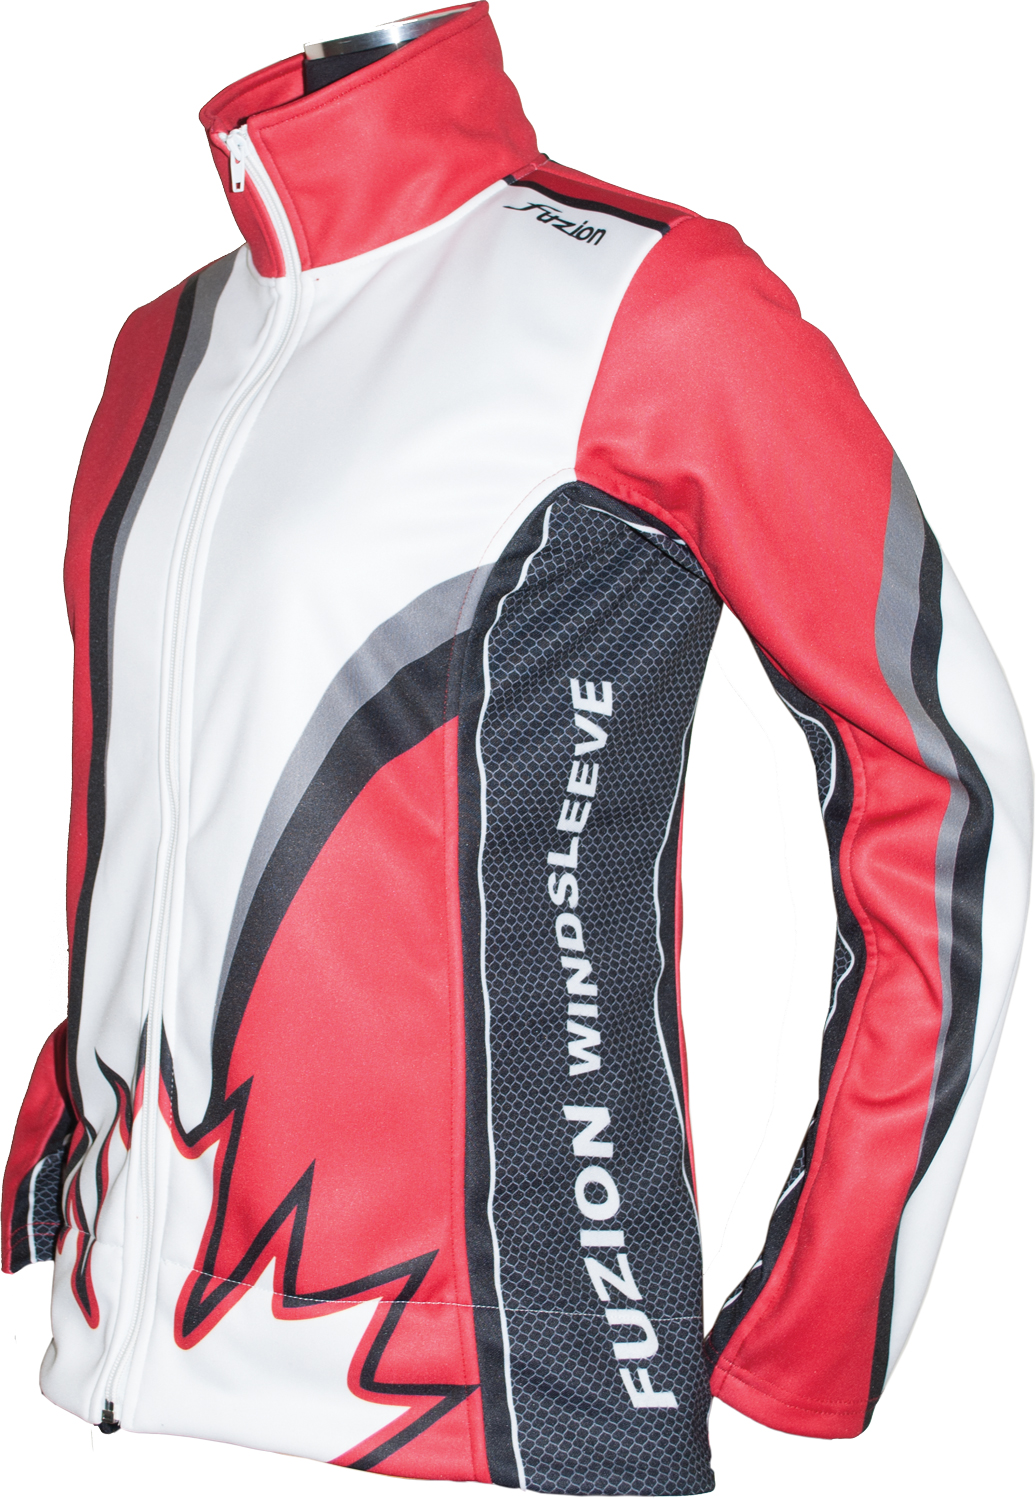 Sublimation Fuzion Sportswear